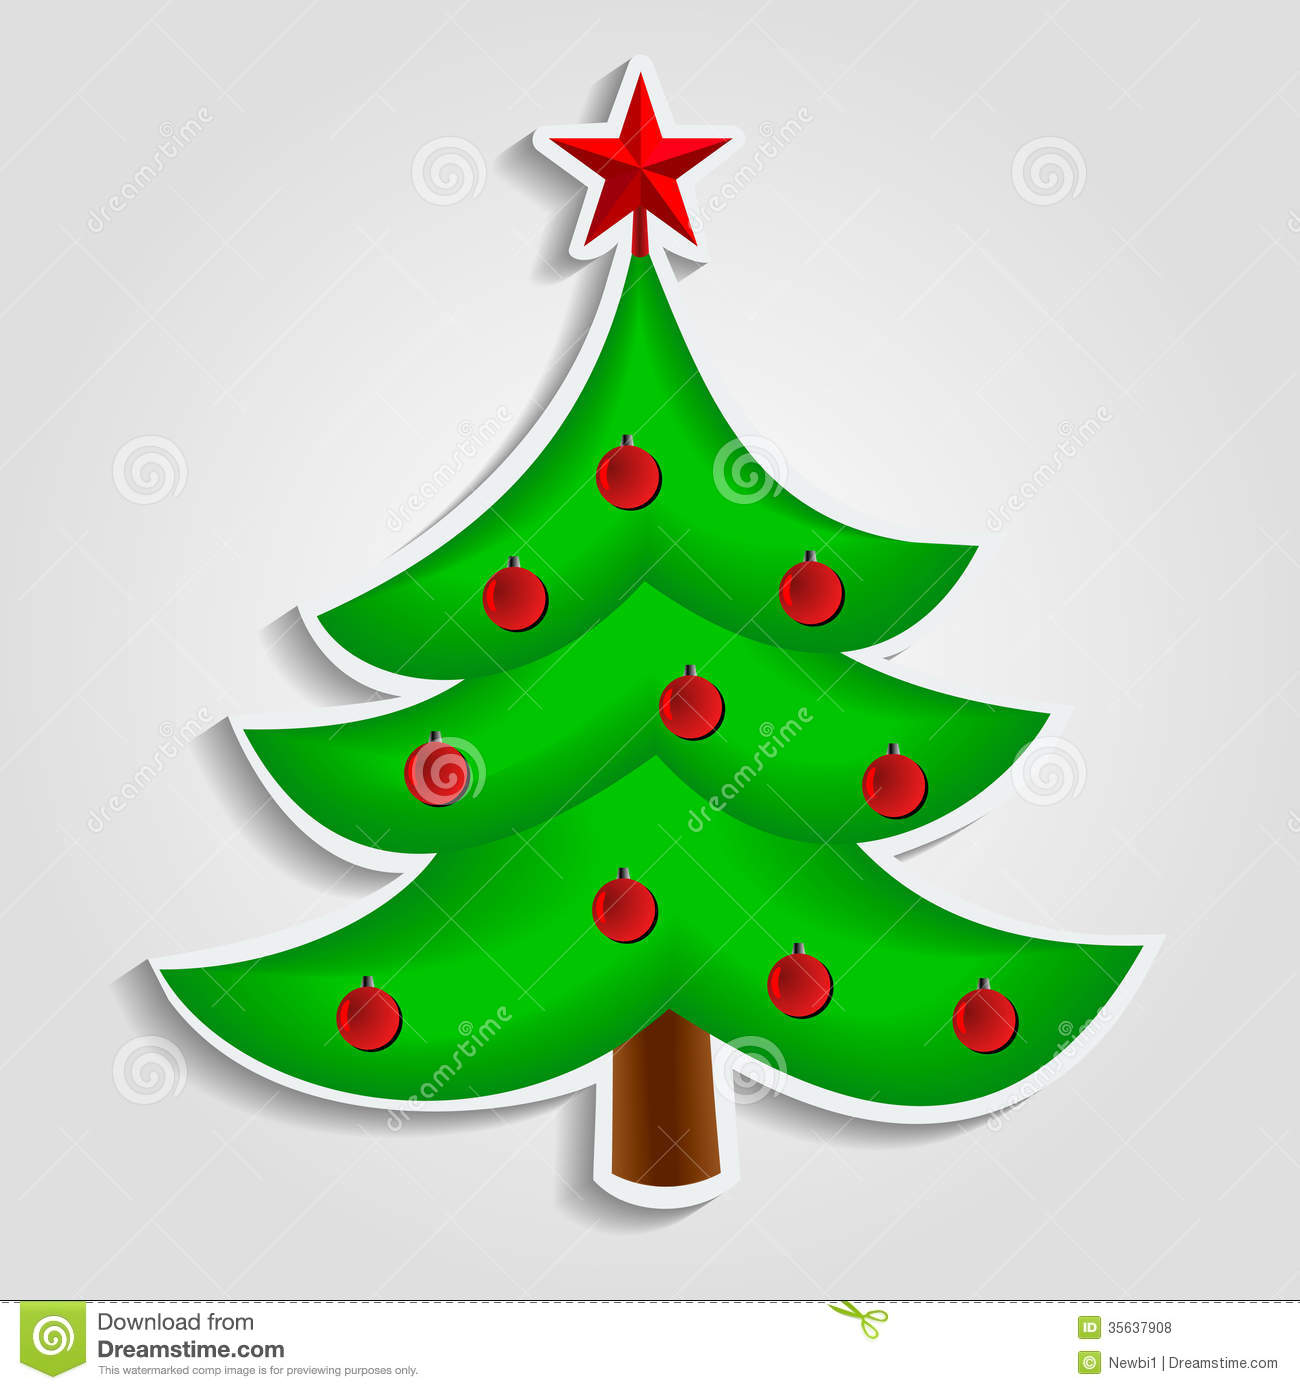 Christmas tree decorations blue and green - Christmas Tree Vector Image In Flat Design Royalty Free Stock Photos